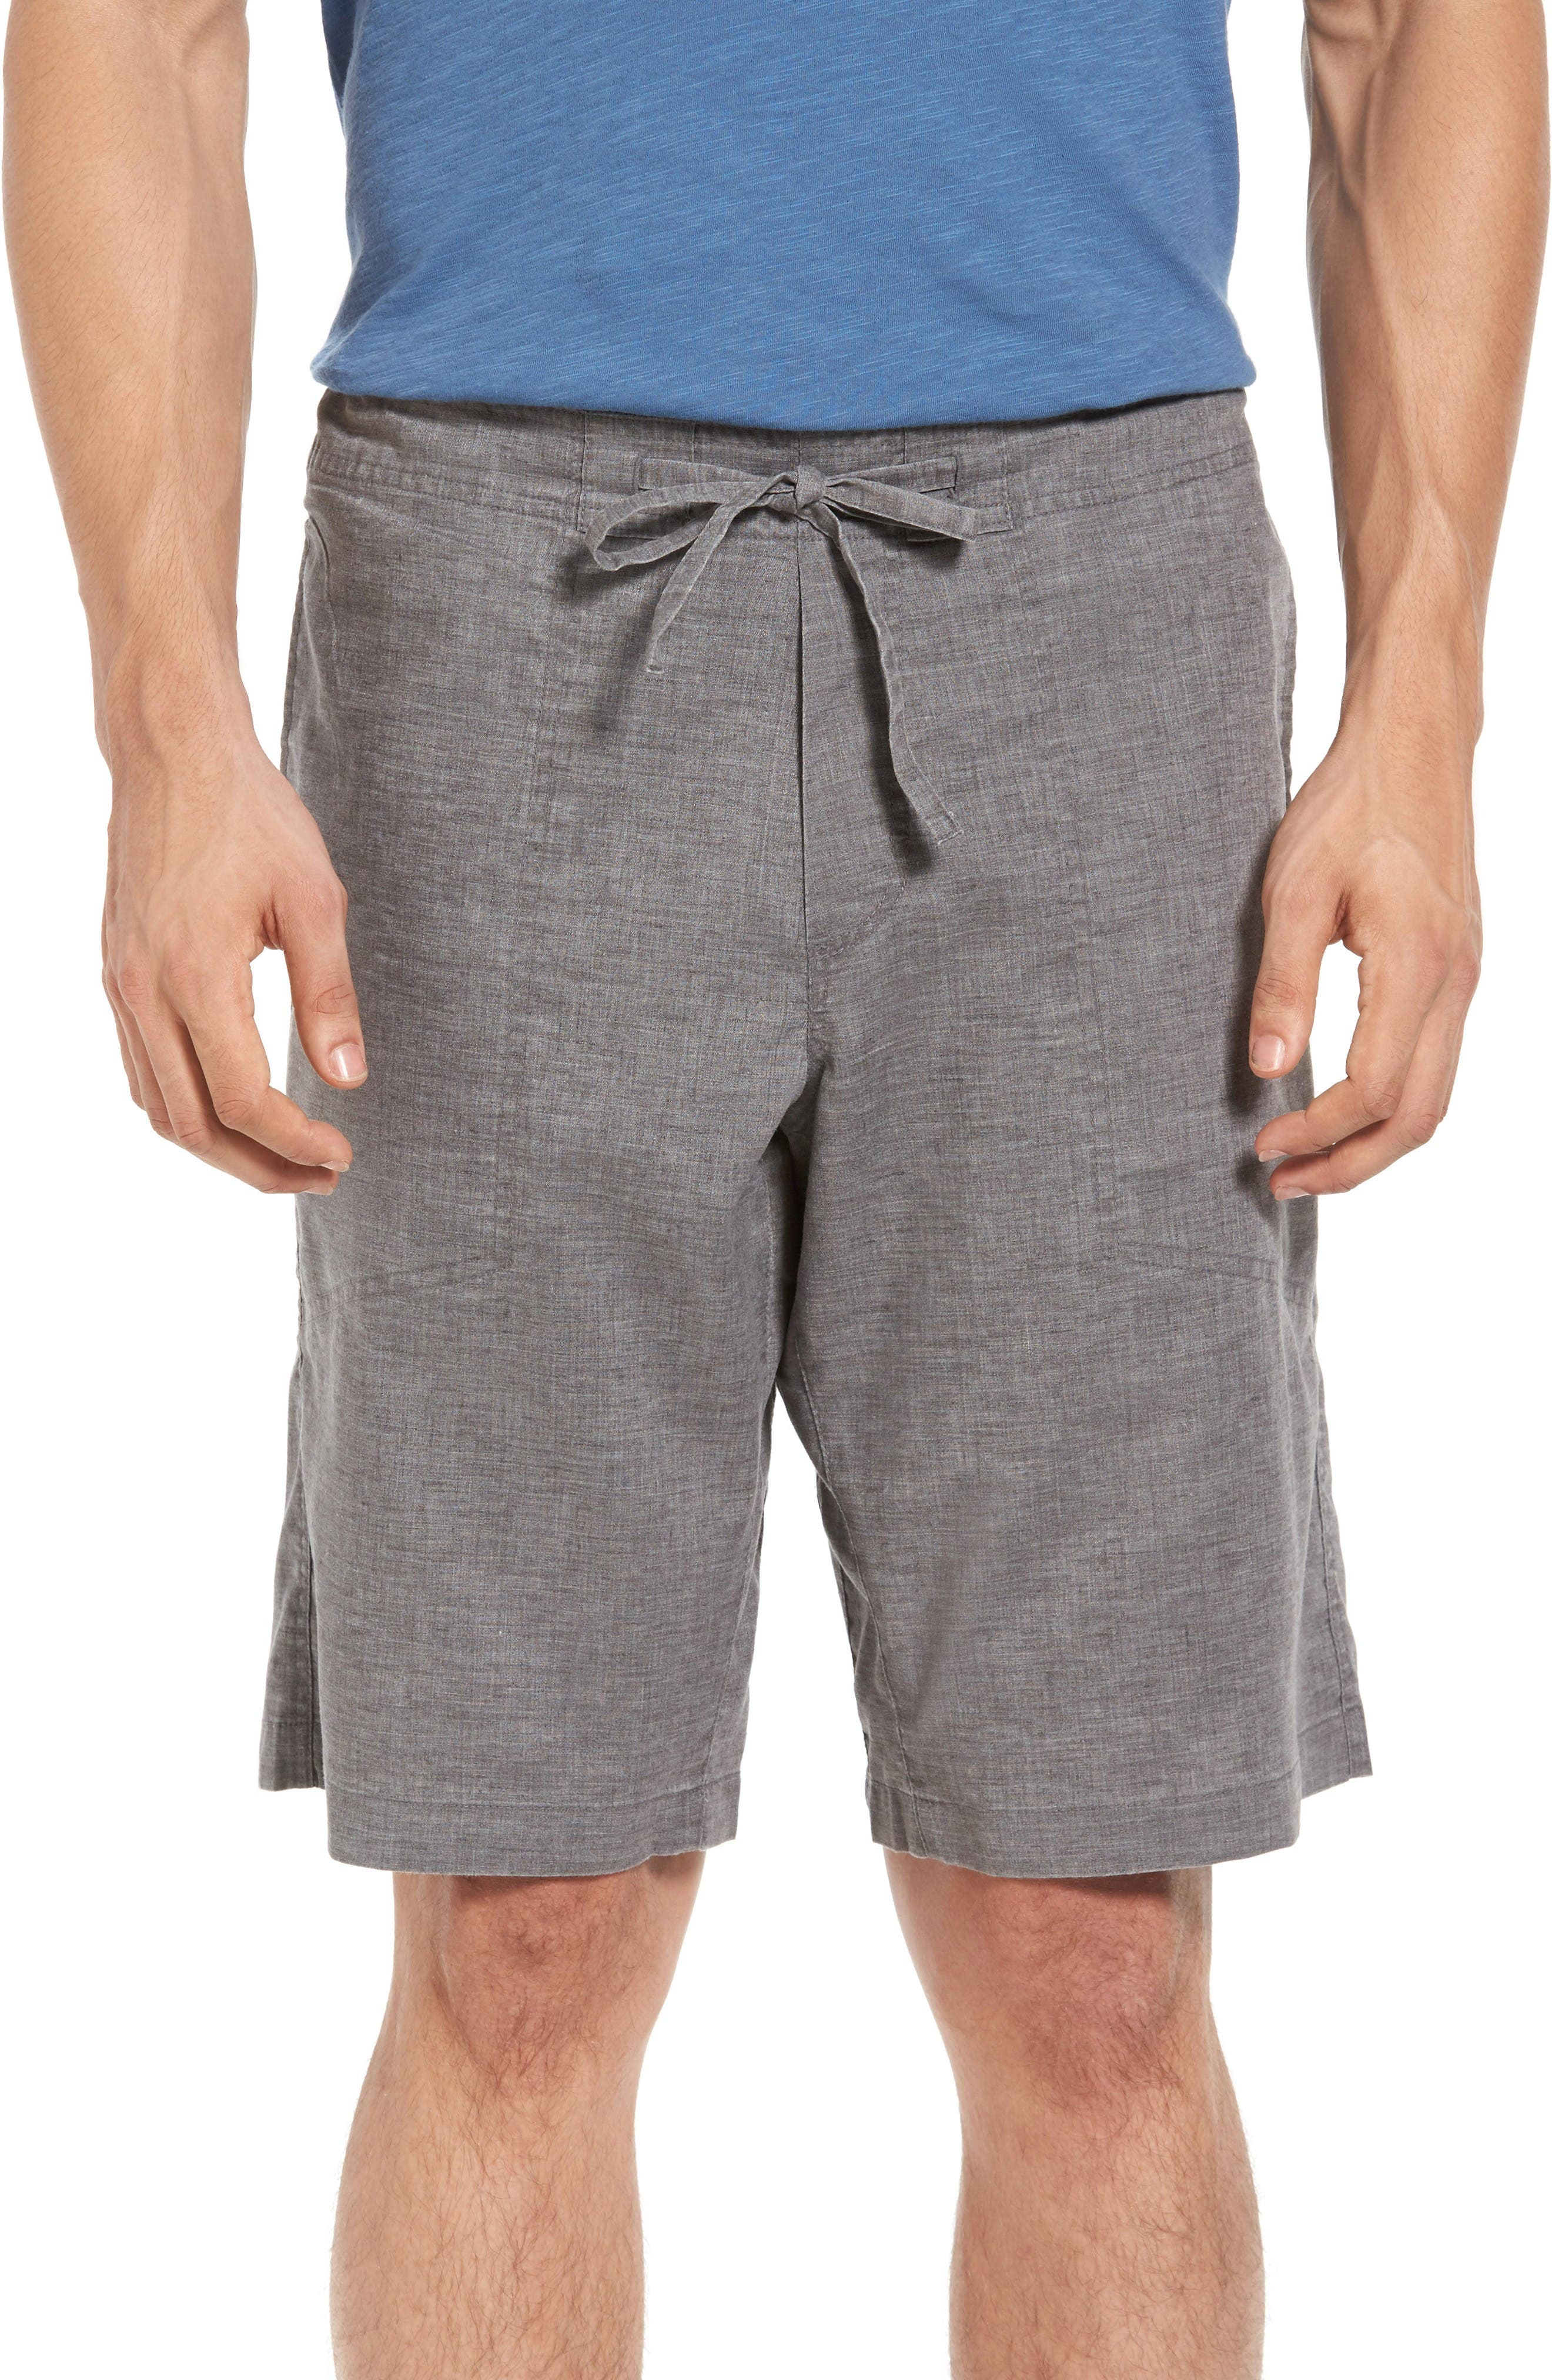 Sutra Shorts,                         Main,                         color, Gravel